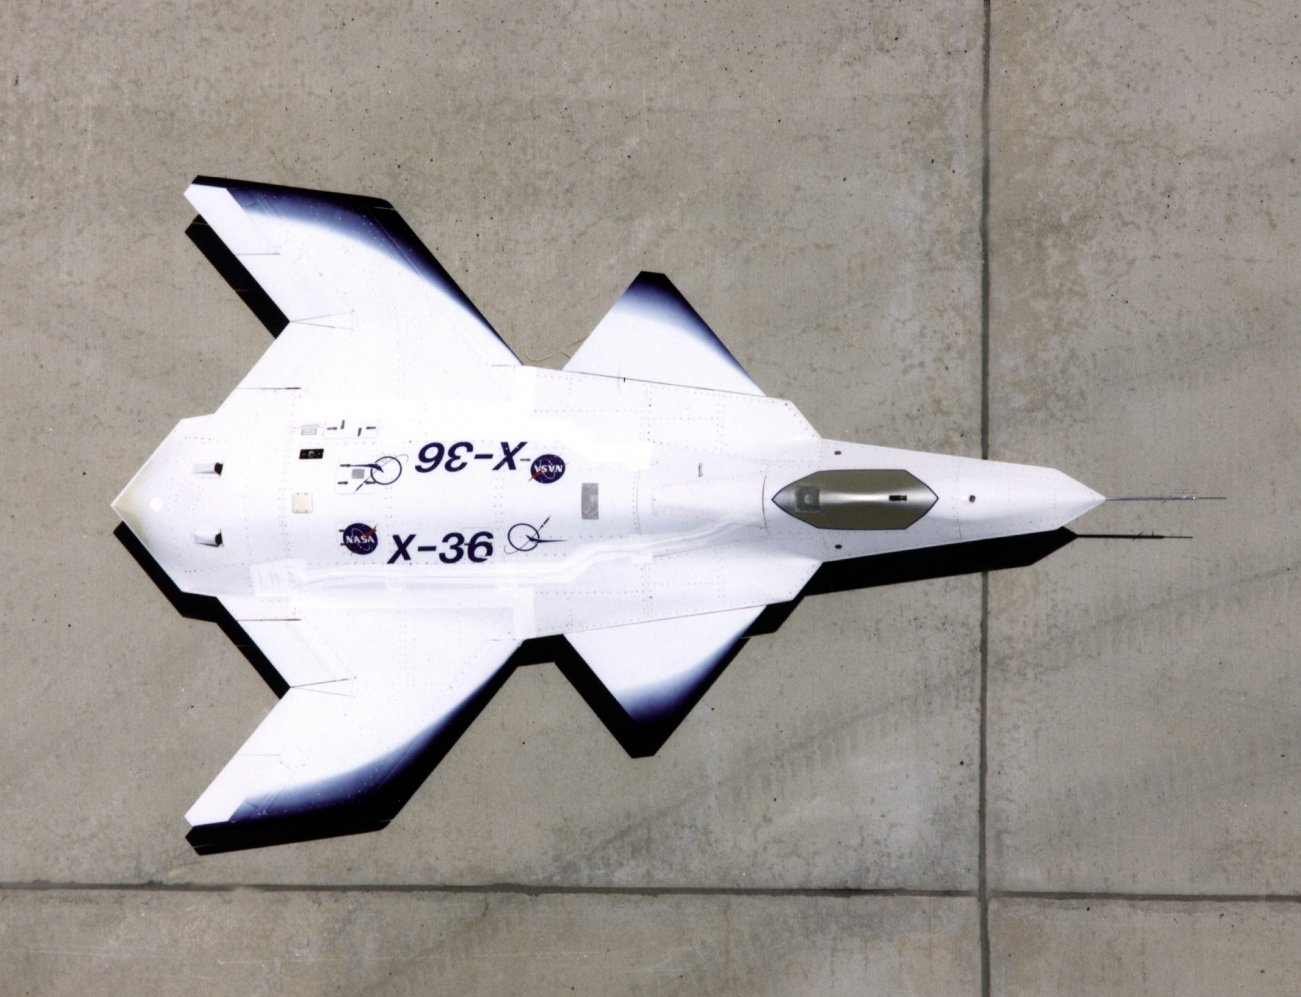 The X-36 Was a Crazy Maneuverable Stealth Fighter. Why Wasn't it Built?